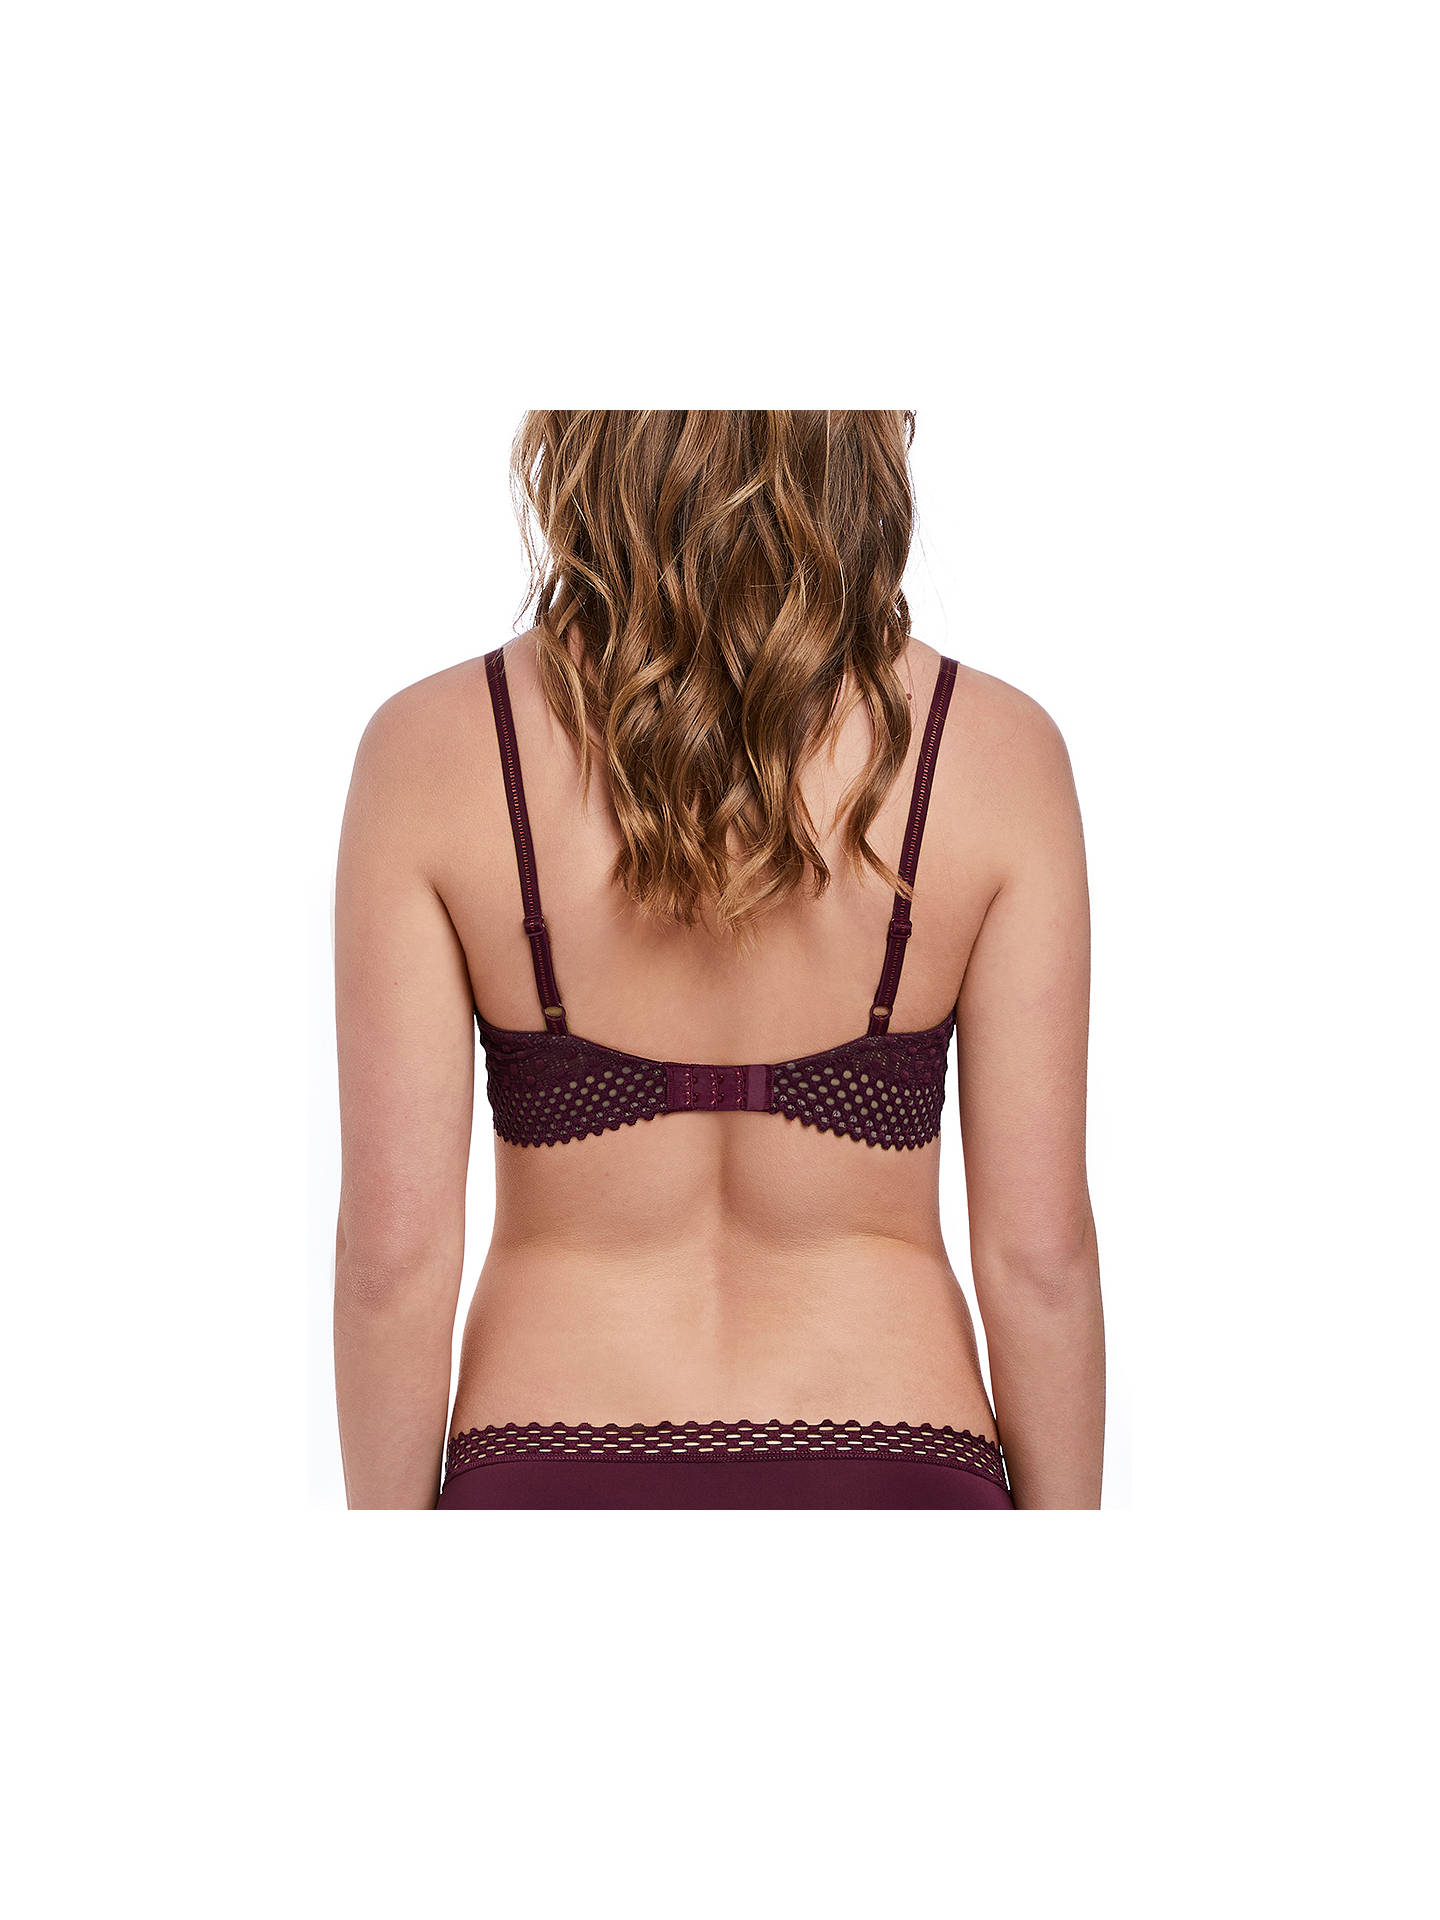 Buyb.tempt'd Tied In Dots Contour Bra, Grape Wine, 32B Online at johnlewis.com